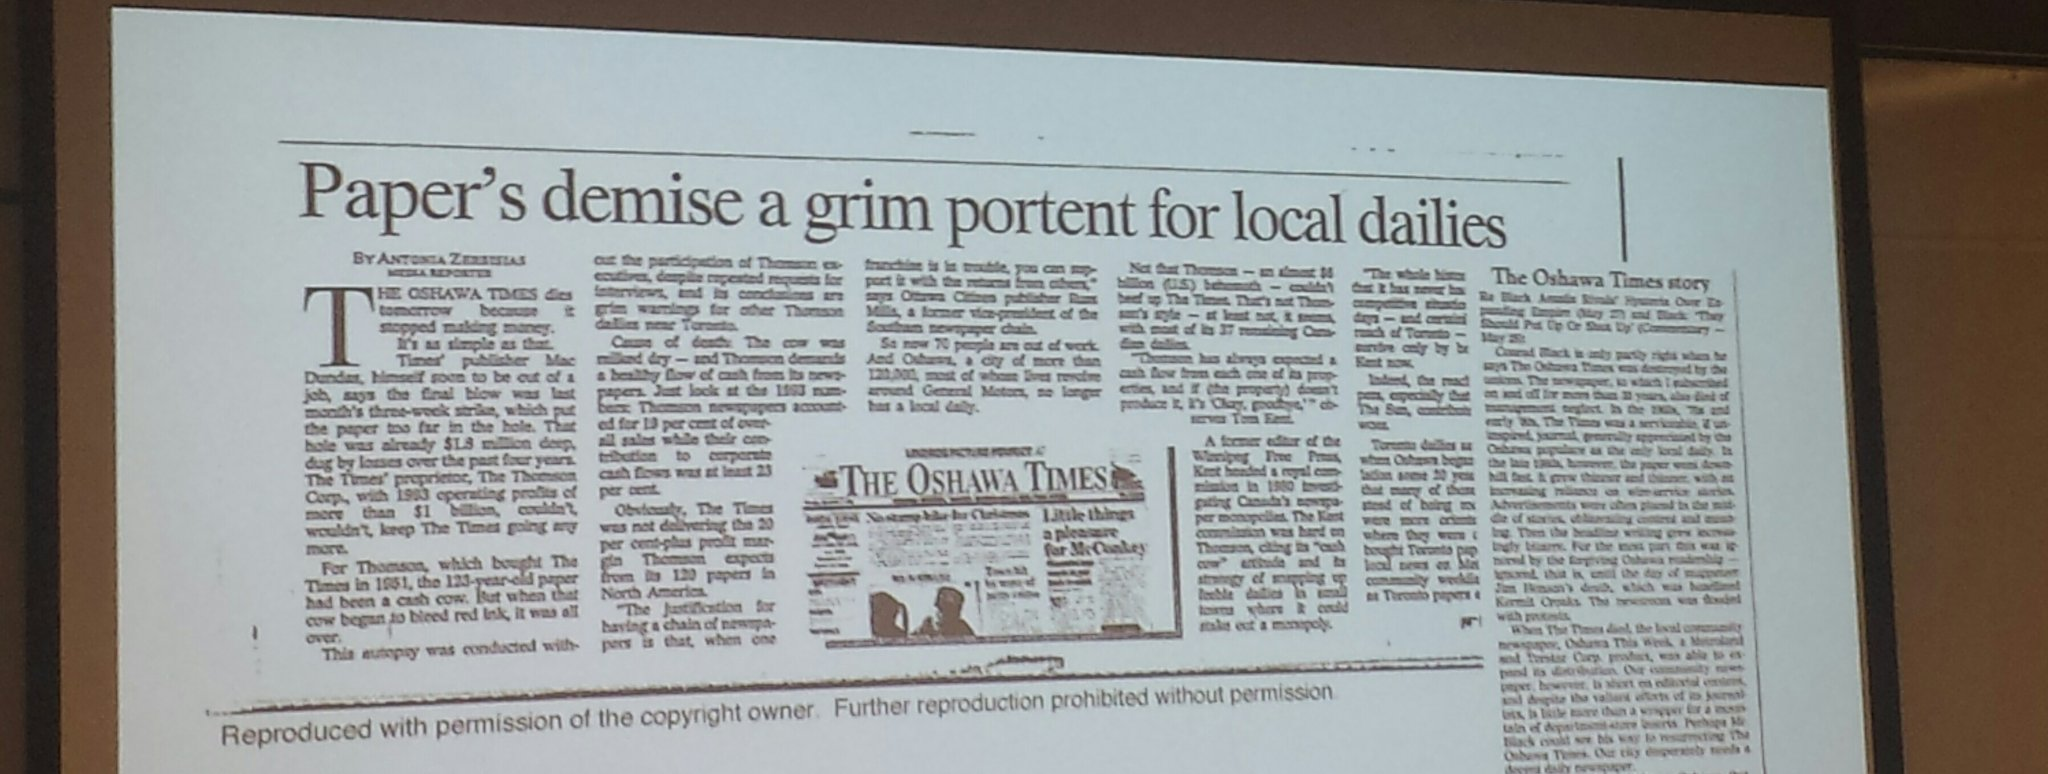 Last panel of the day. @pd_rowe is talking about the closure of the Oshawa Times in 1994. Here is an evergreen headline #localnews17 https://t.co/wl6ytTmt8L